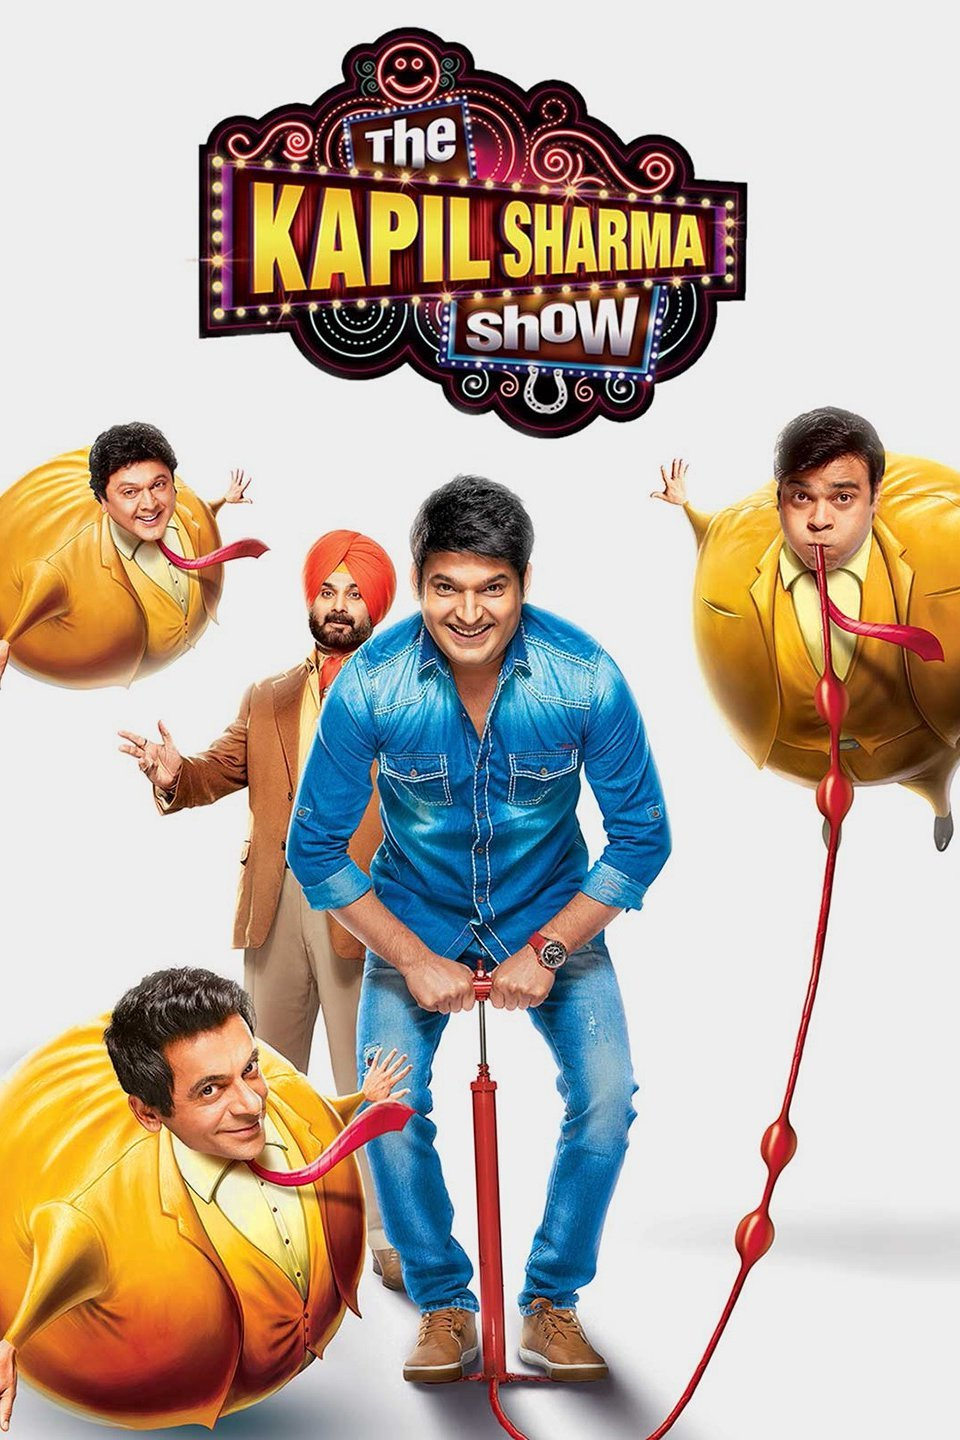 The Kapil Sharma Show 29th June 2019 Hindi 300MB HDTV 480p